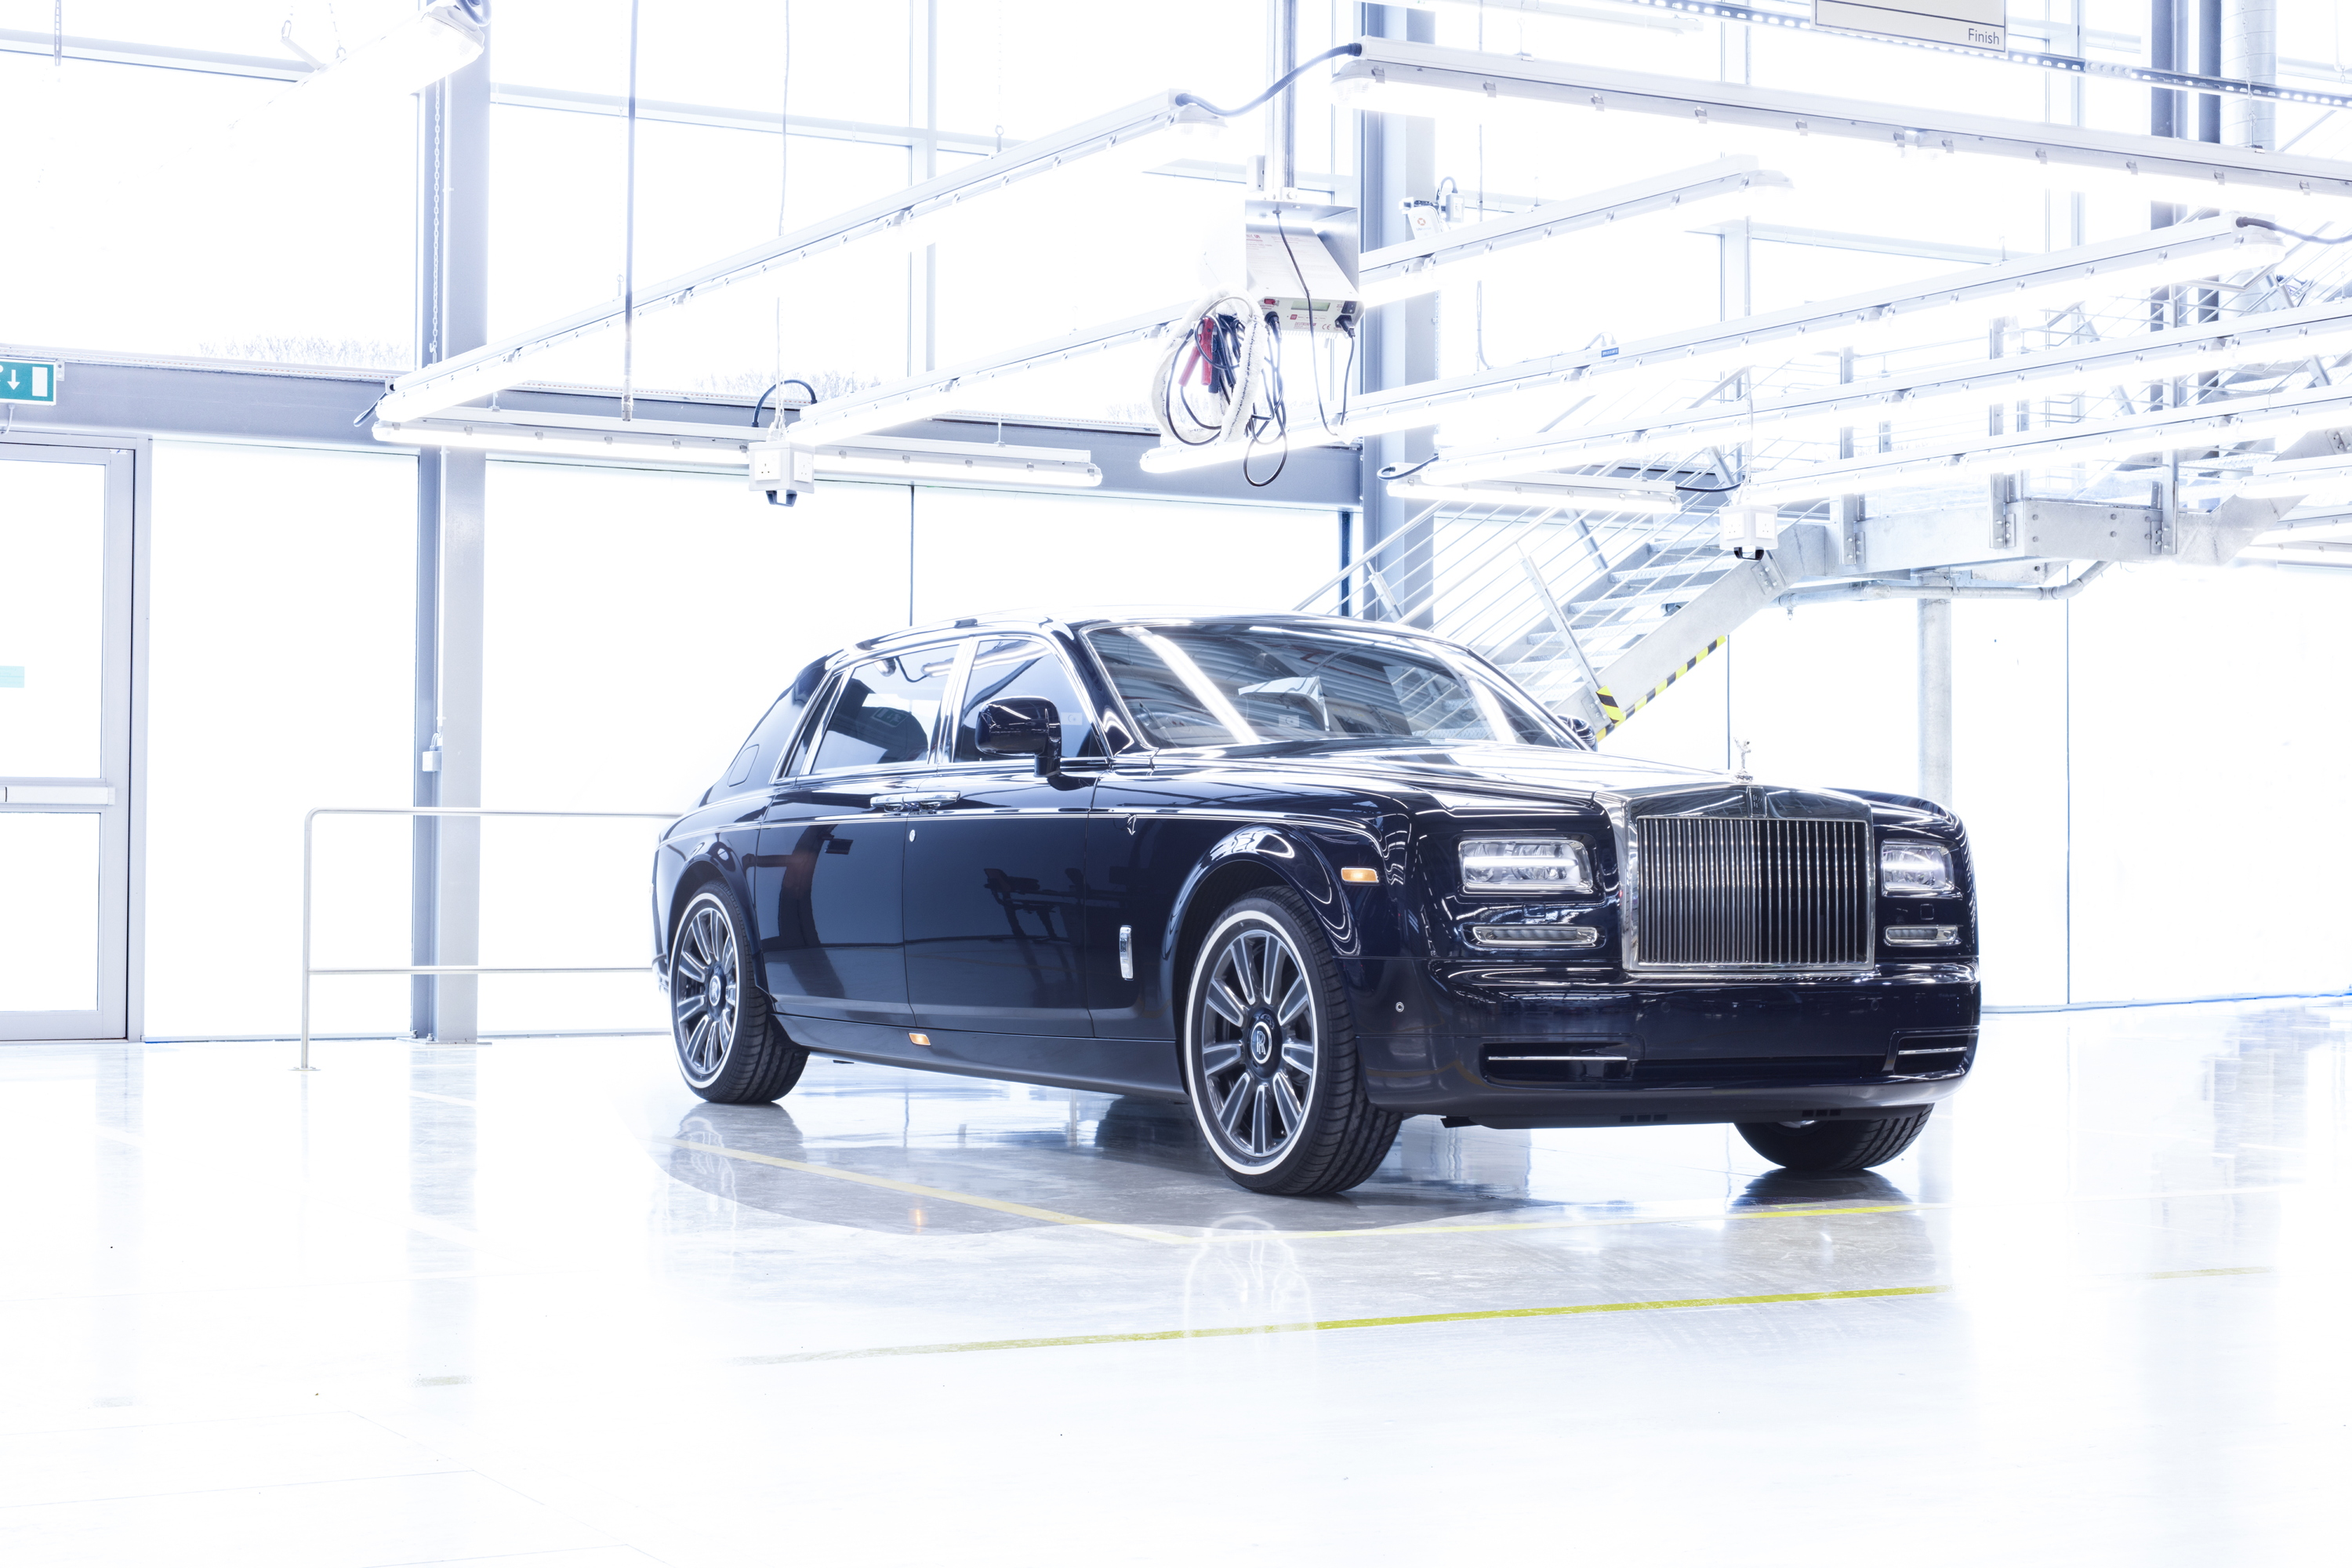 Final Rolls-Royce Phantom VII front